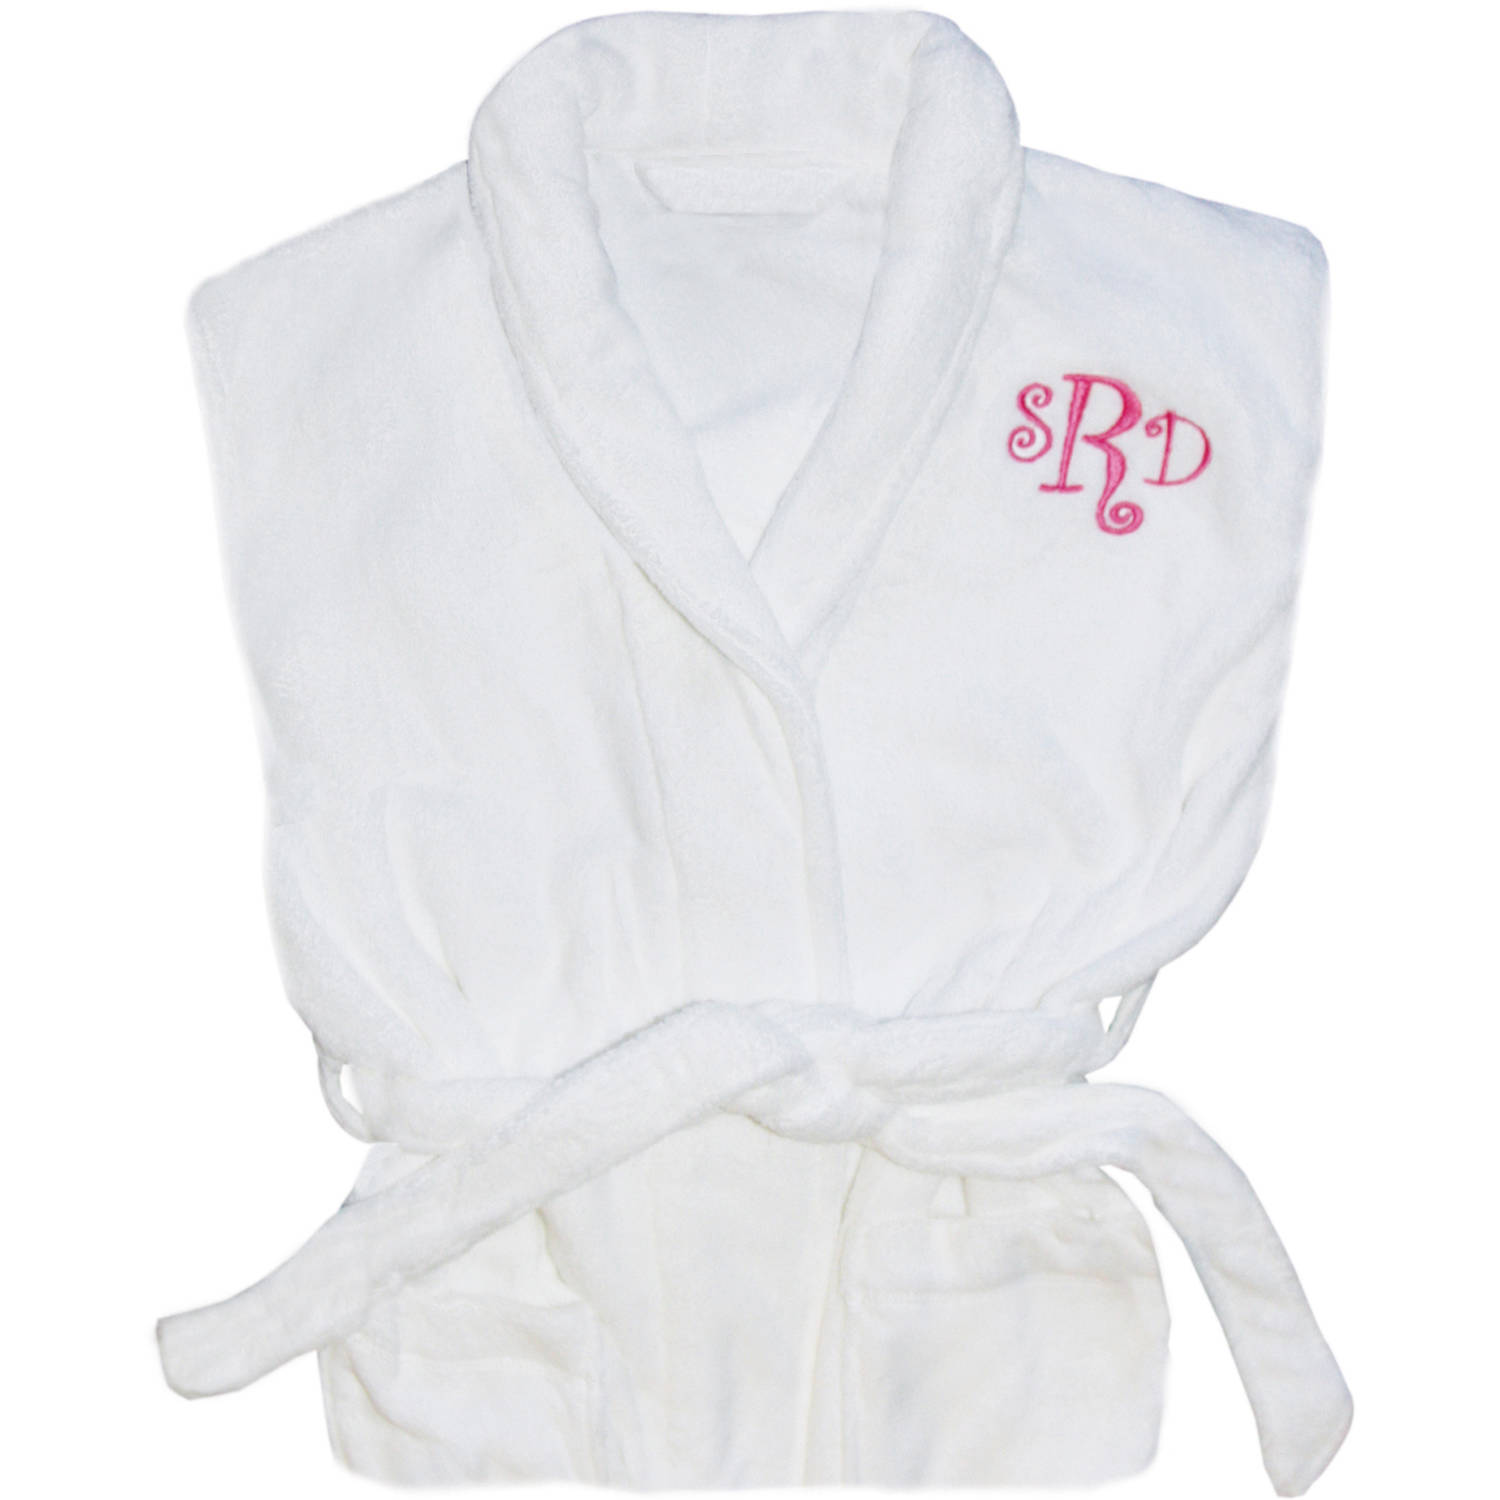 Personalized Shawl Collar Robe, Available in Pink and Navy